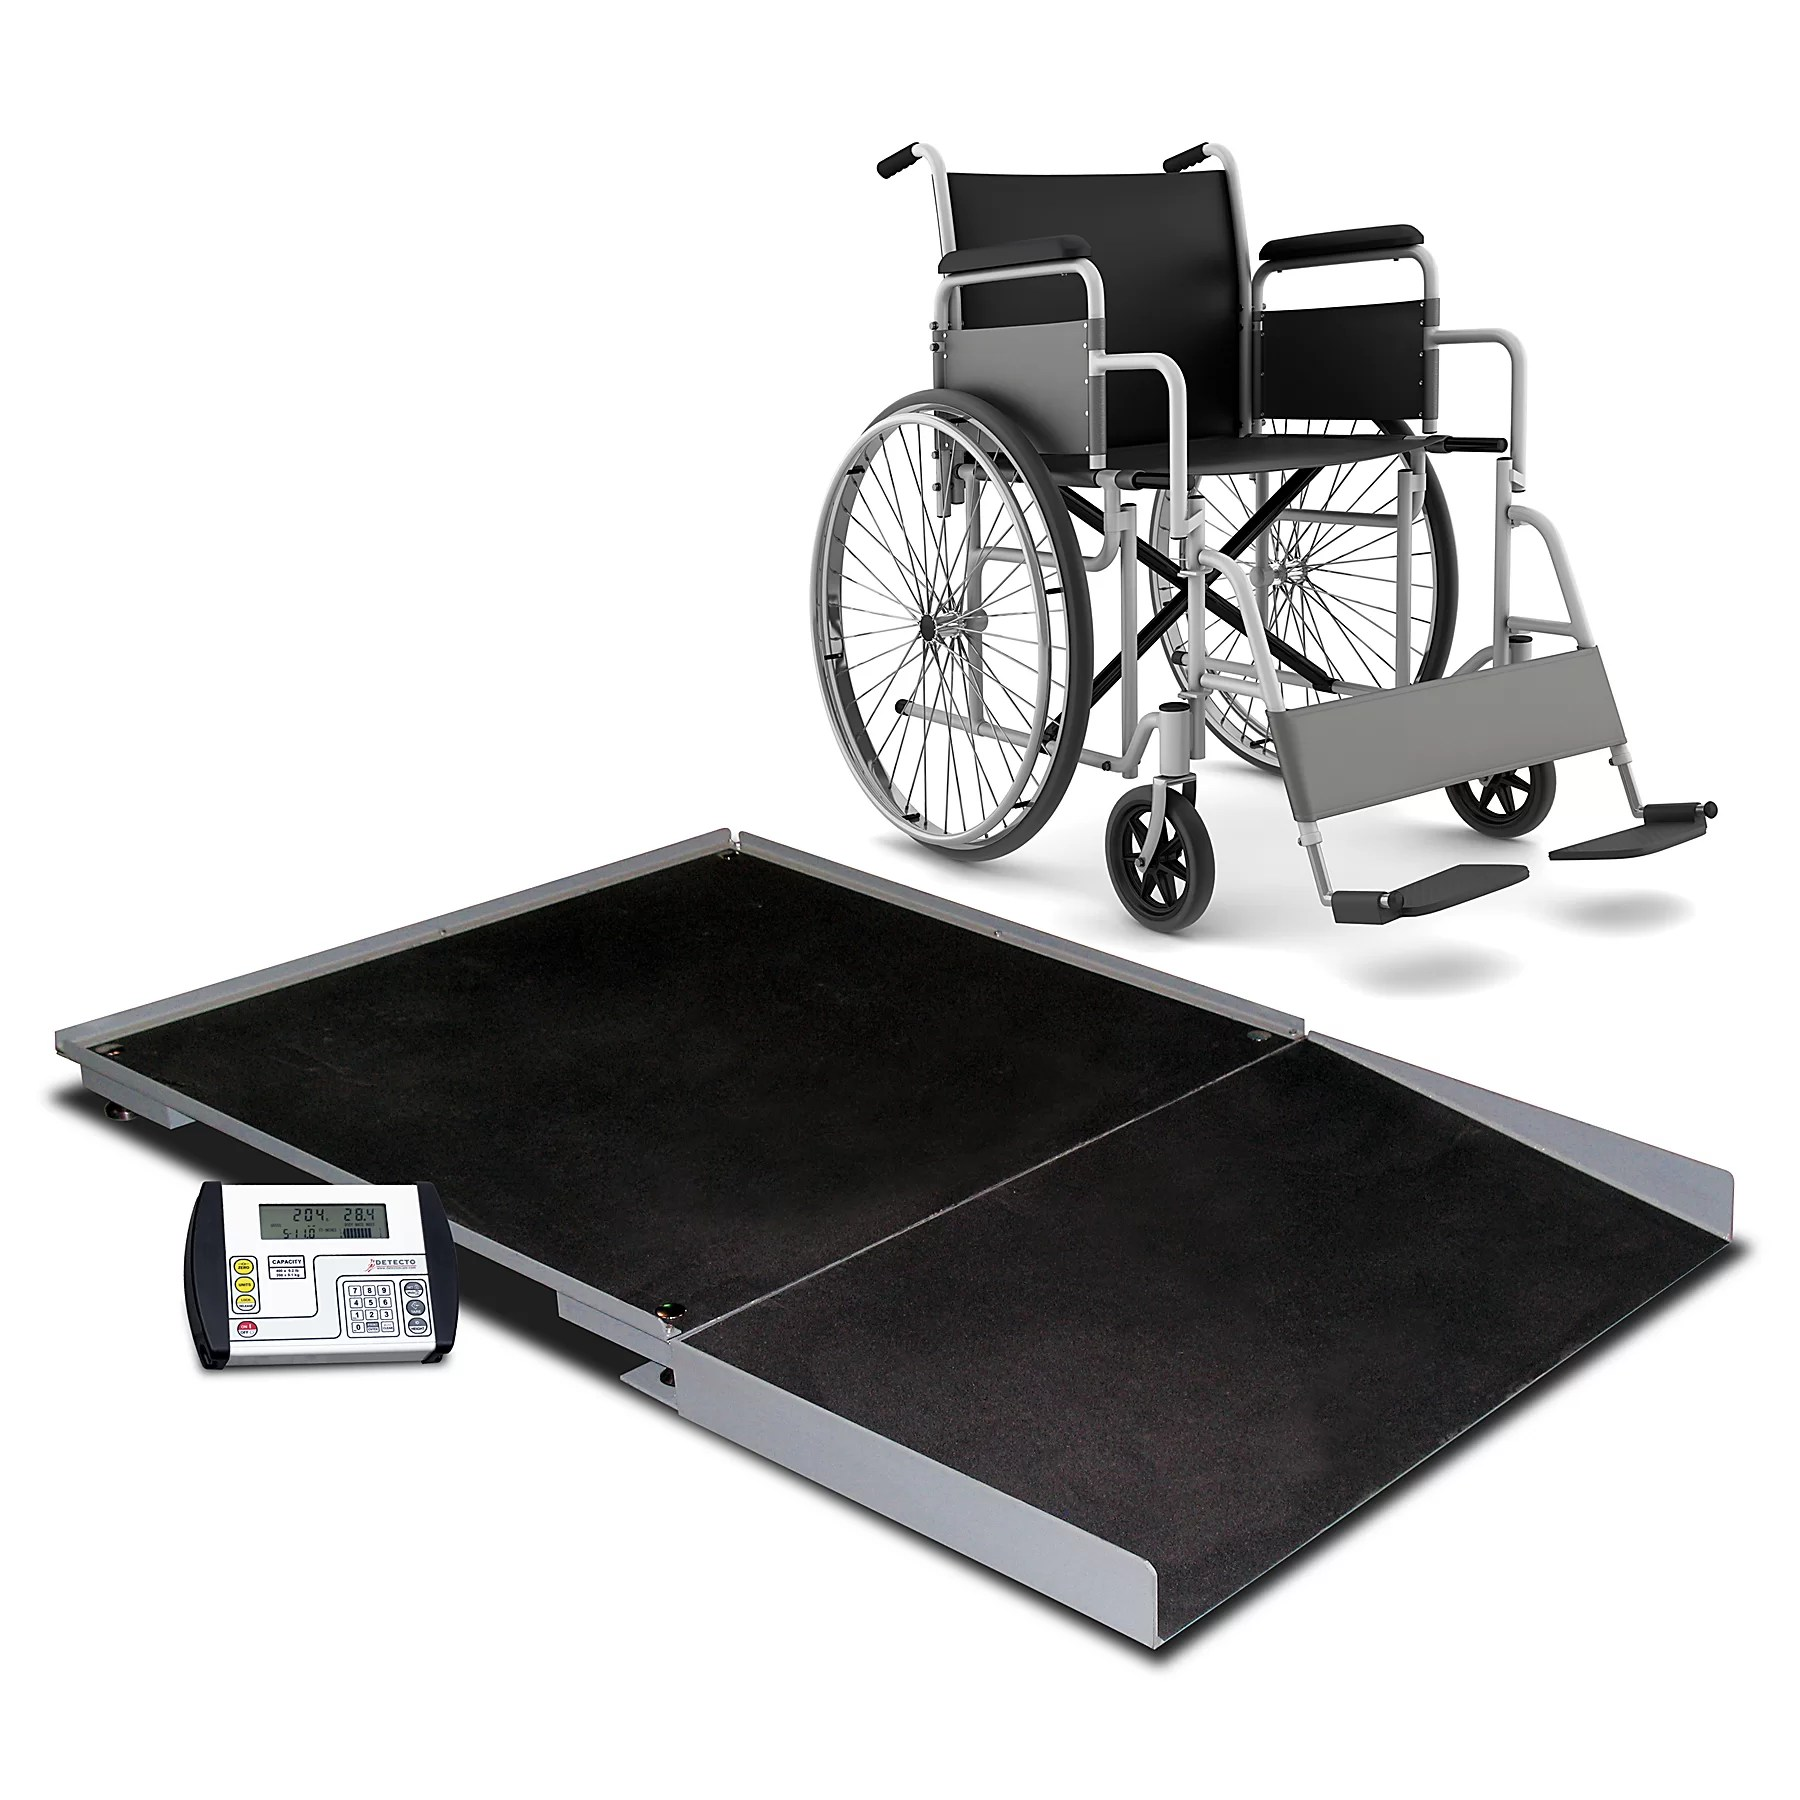 detecto chair scale desk utm digital geriatric stationary wheelchair